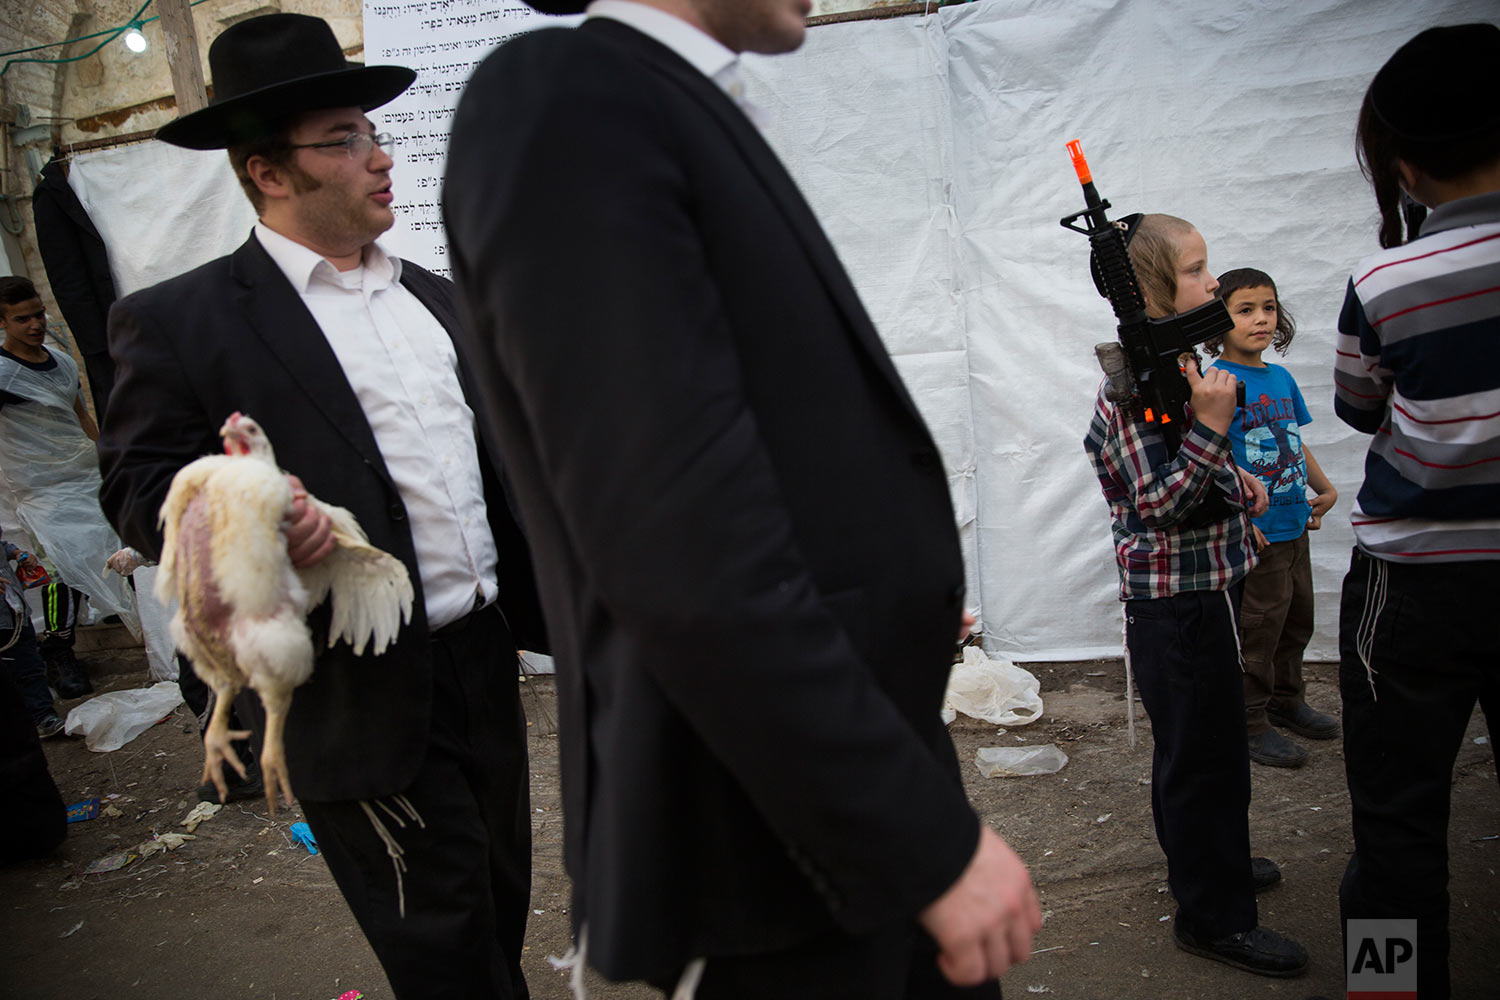 An ultra-Orthodox Jewish man holds a chicken to be used during the Kaparot ritual, as a child holds a toy gun, in Jerusalem, Wednesday, Sept. 27, 2017. (AP Photo/Oded Balilty)